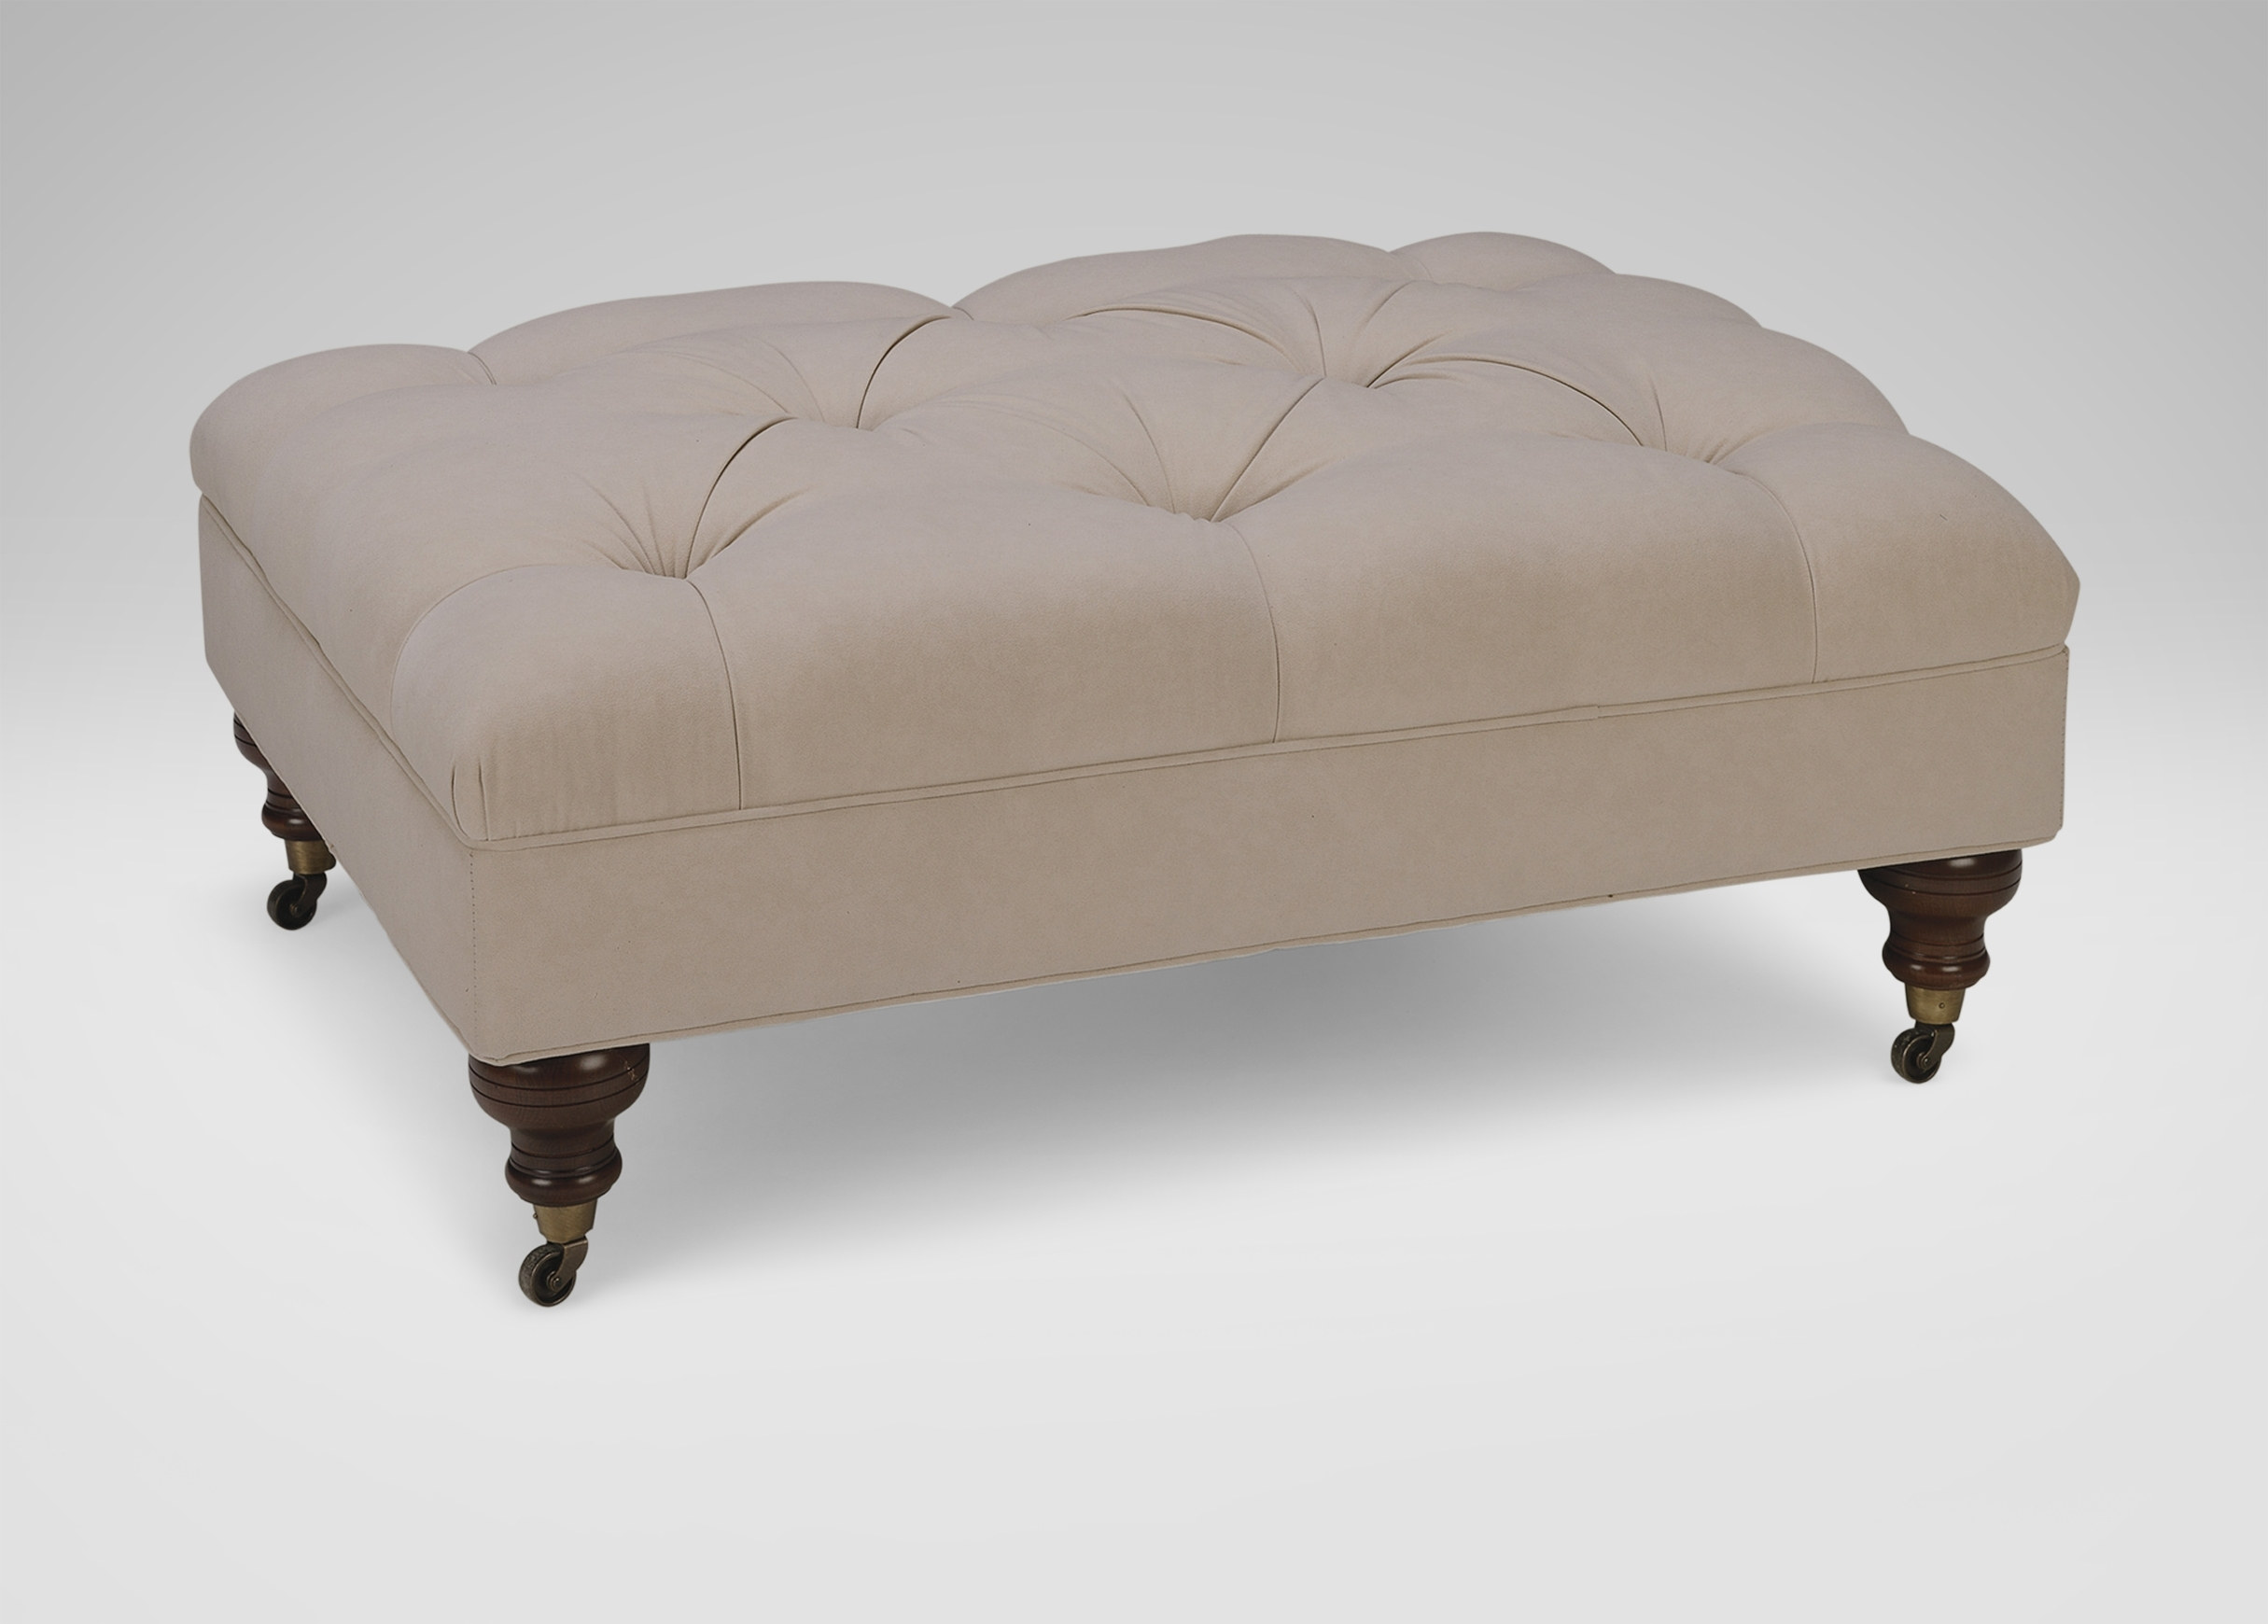 Anton Ottoman | Ottomans & Benches For Ottomans With Wheels (Image 1 of 10)